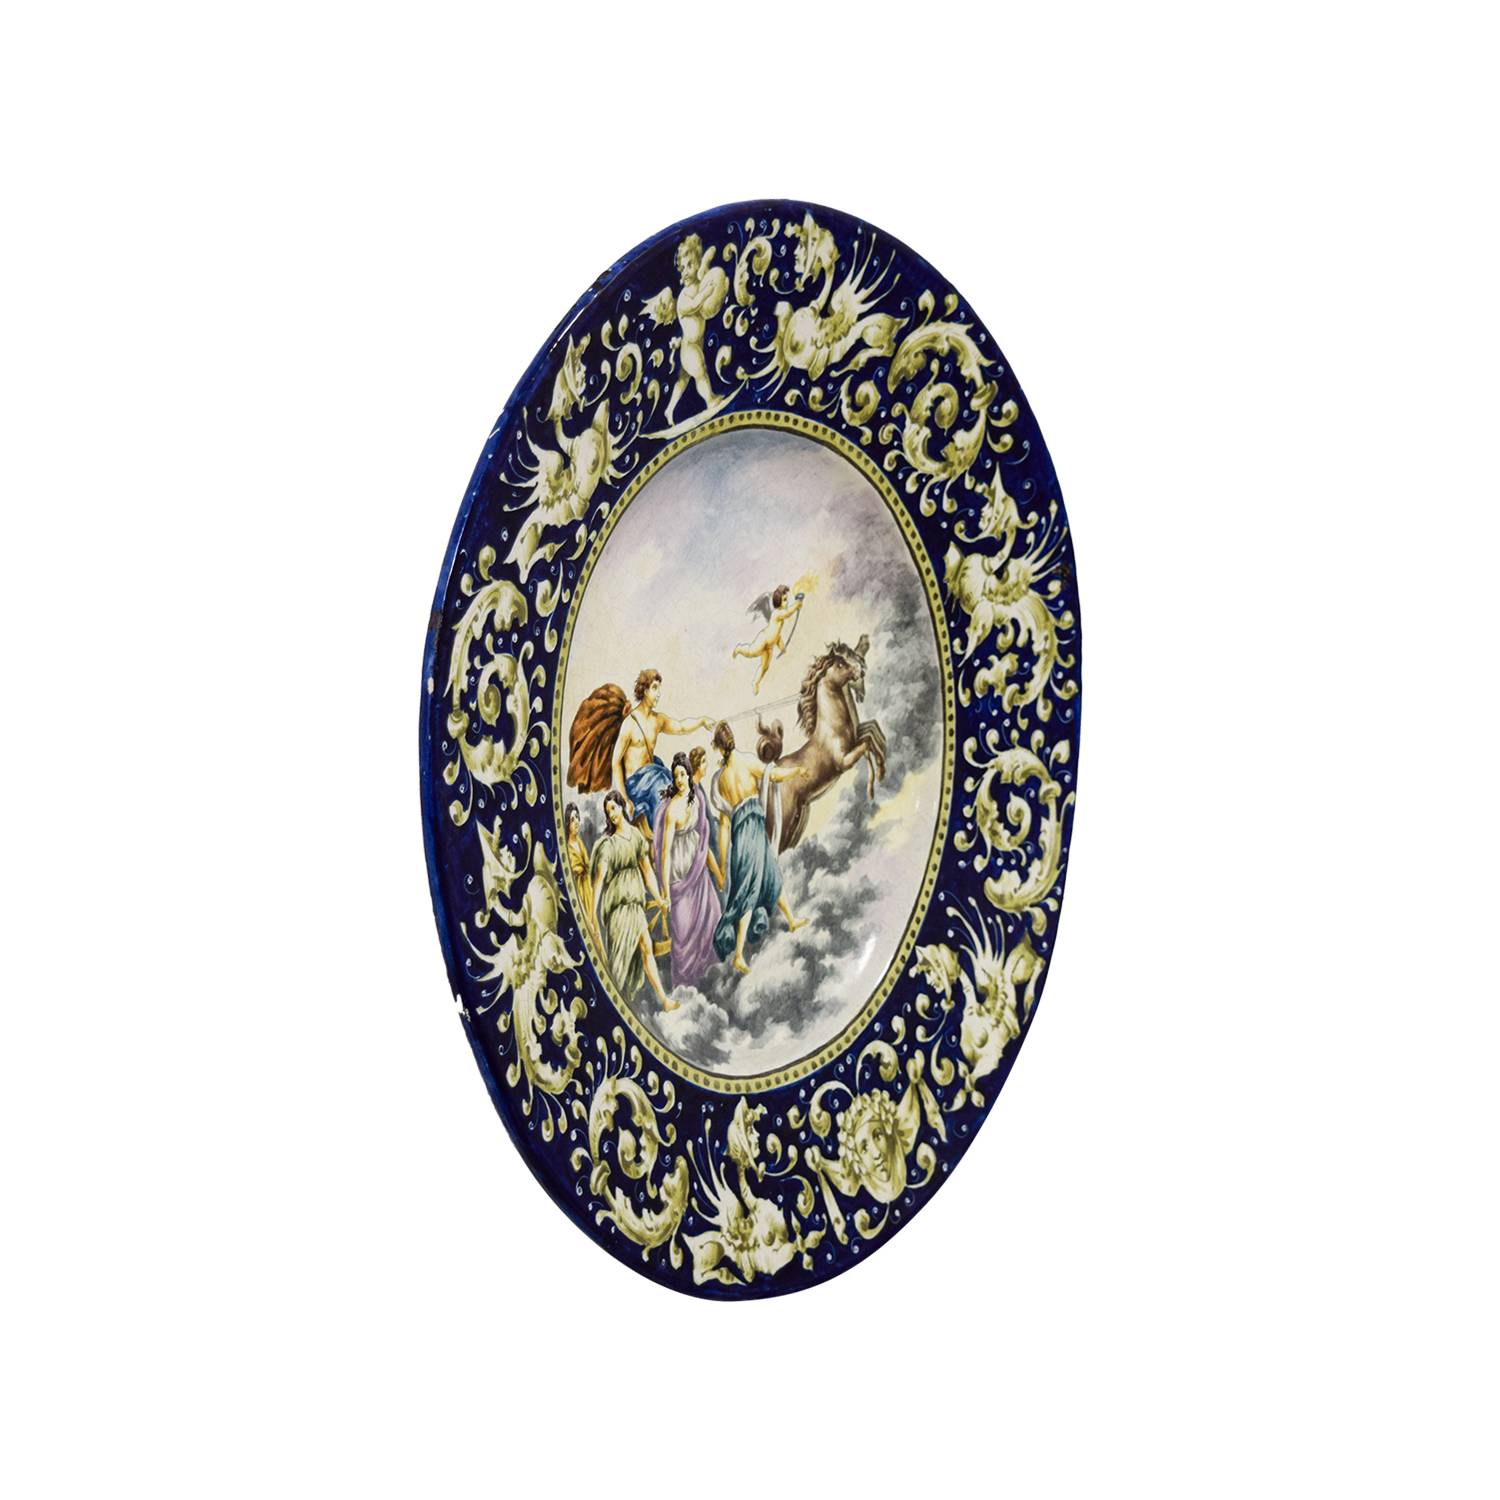 Antique Dish Decorative Accents